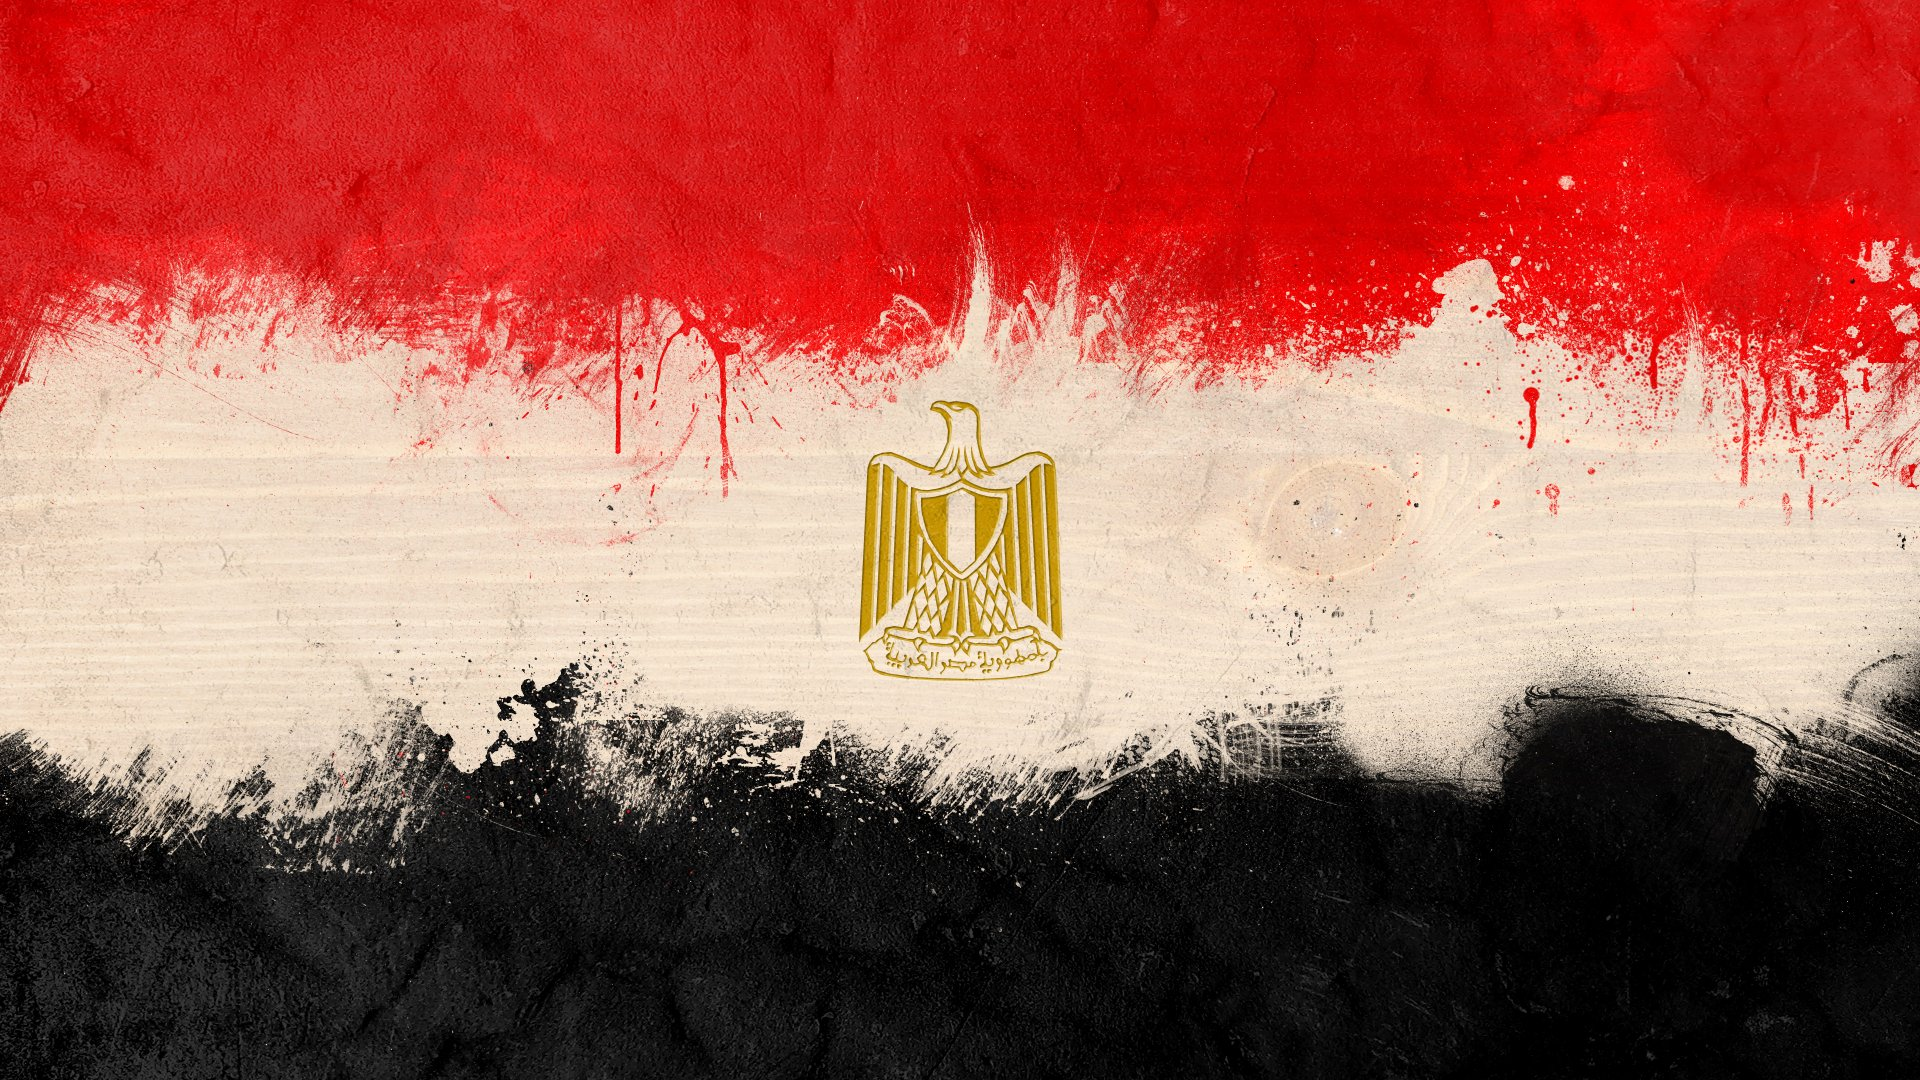 https://naidychaag.files.wordpress.com/2015/09/egypt-flag.jpg